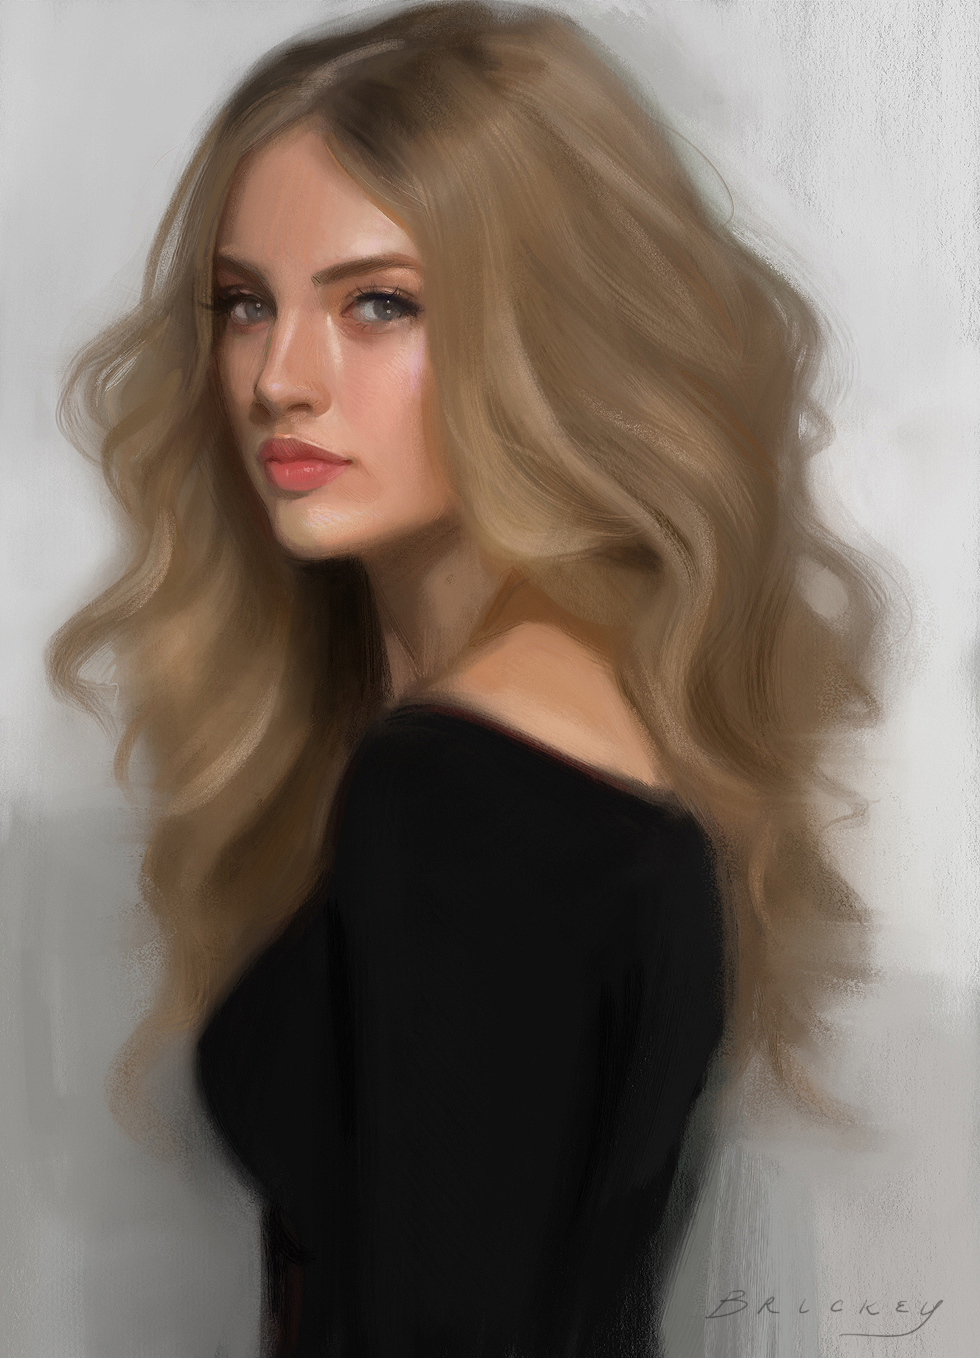 Painting in Procreate